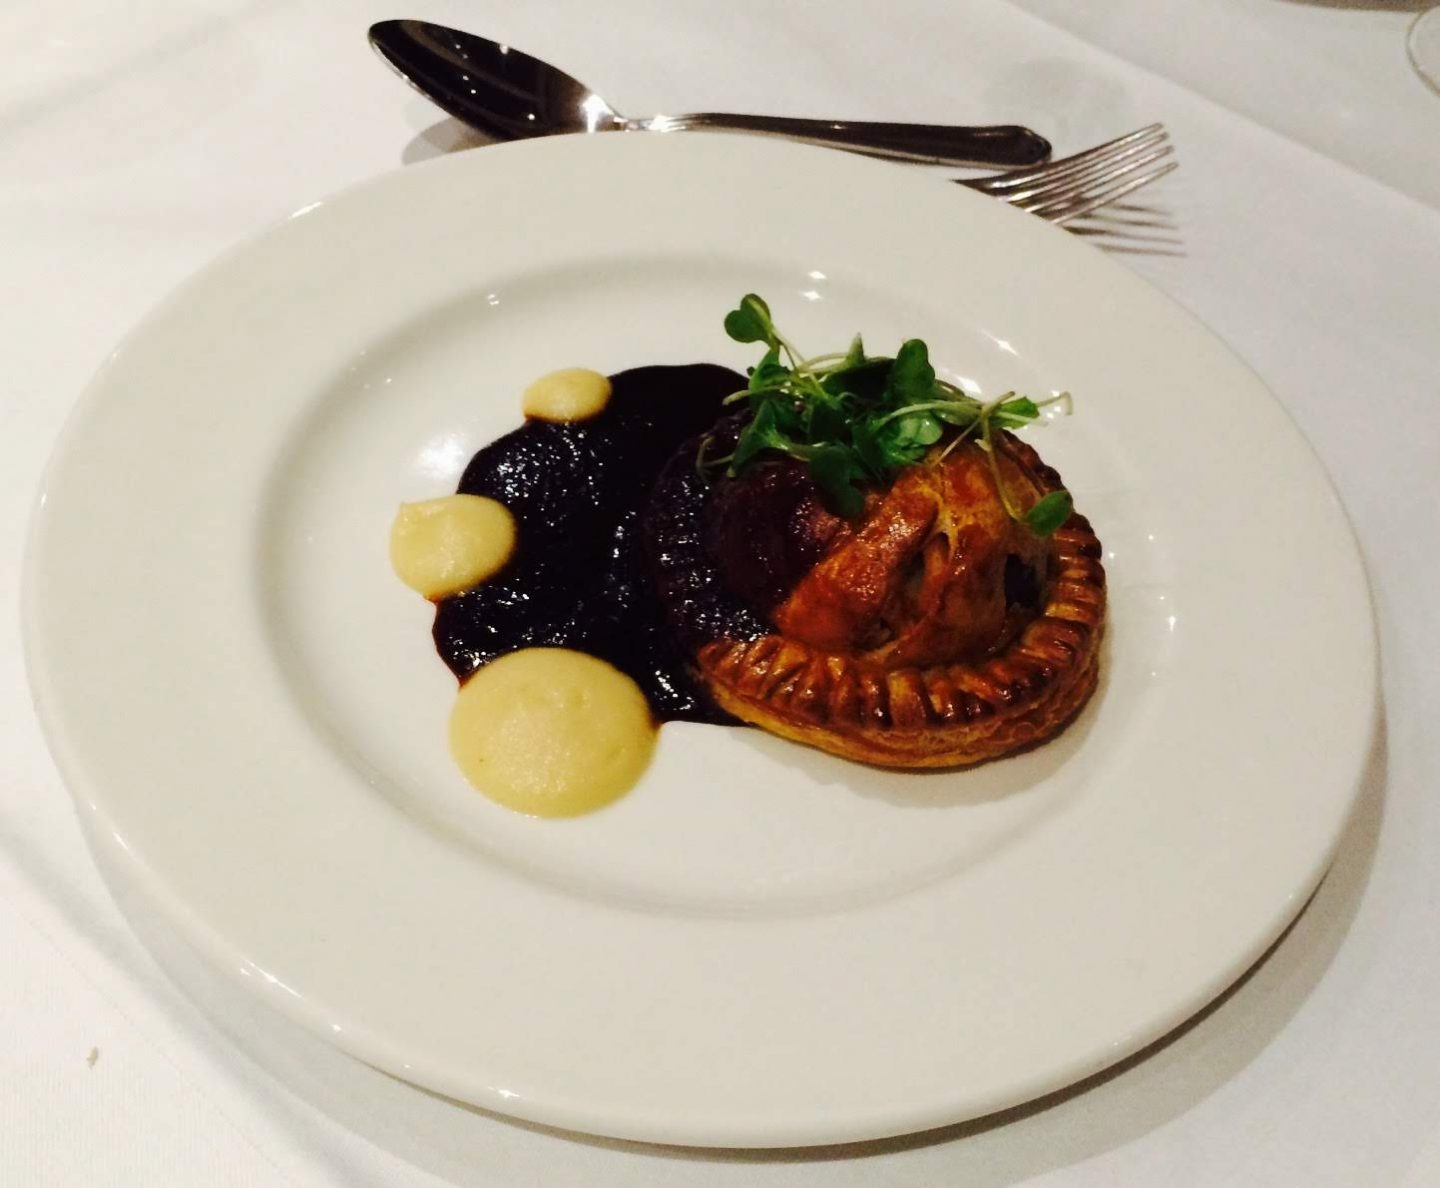 Pigeon pithivier for starters